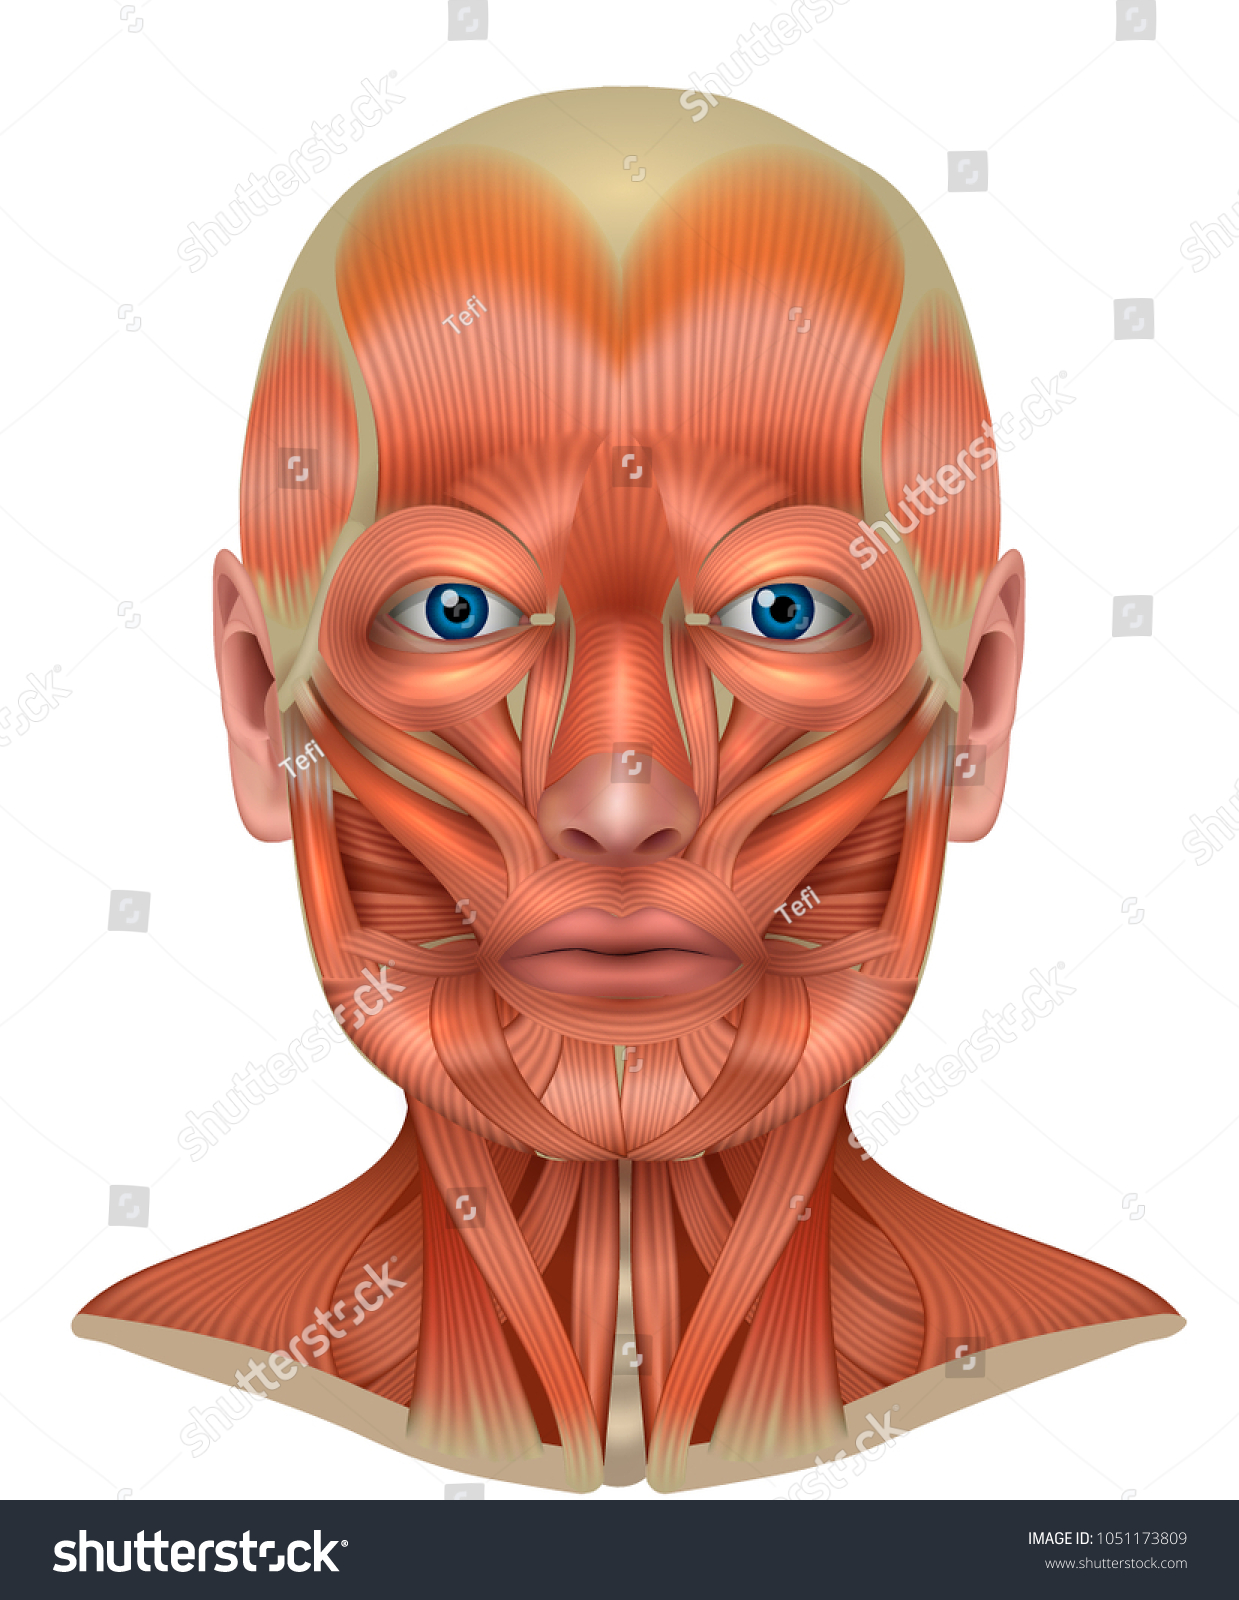 Royalty Free Stock Illustration Of Muscles Face Neck Detailed Bright